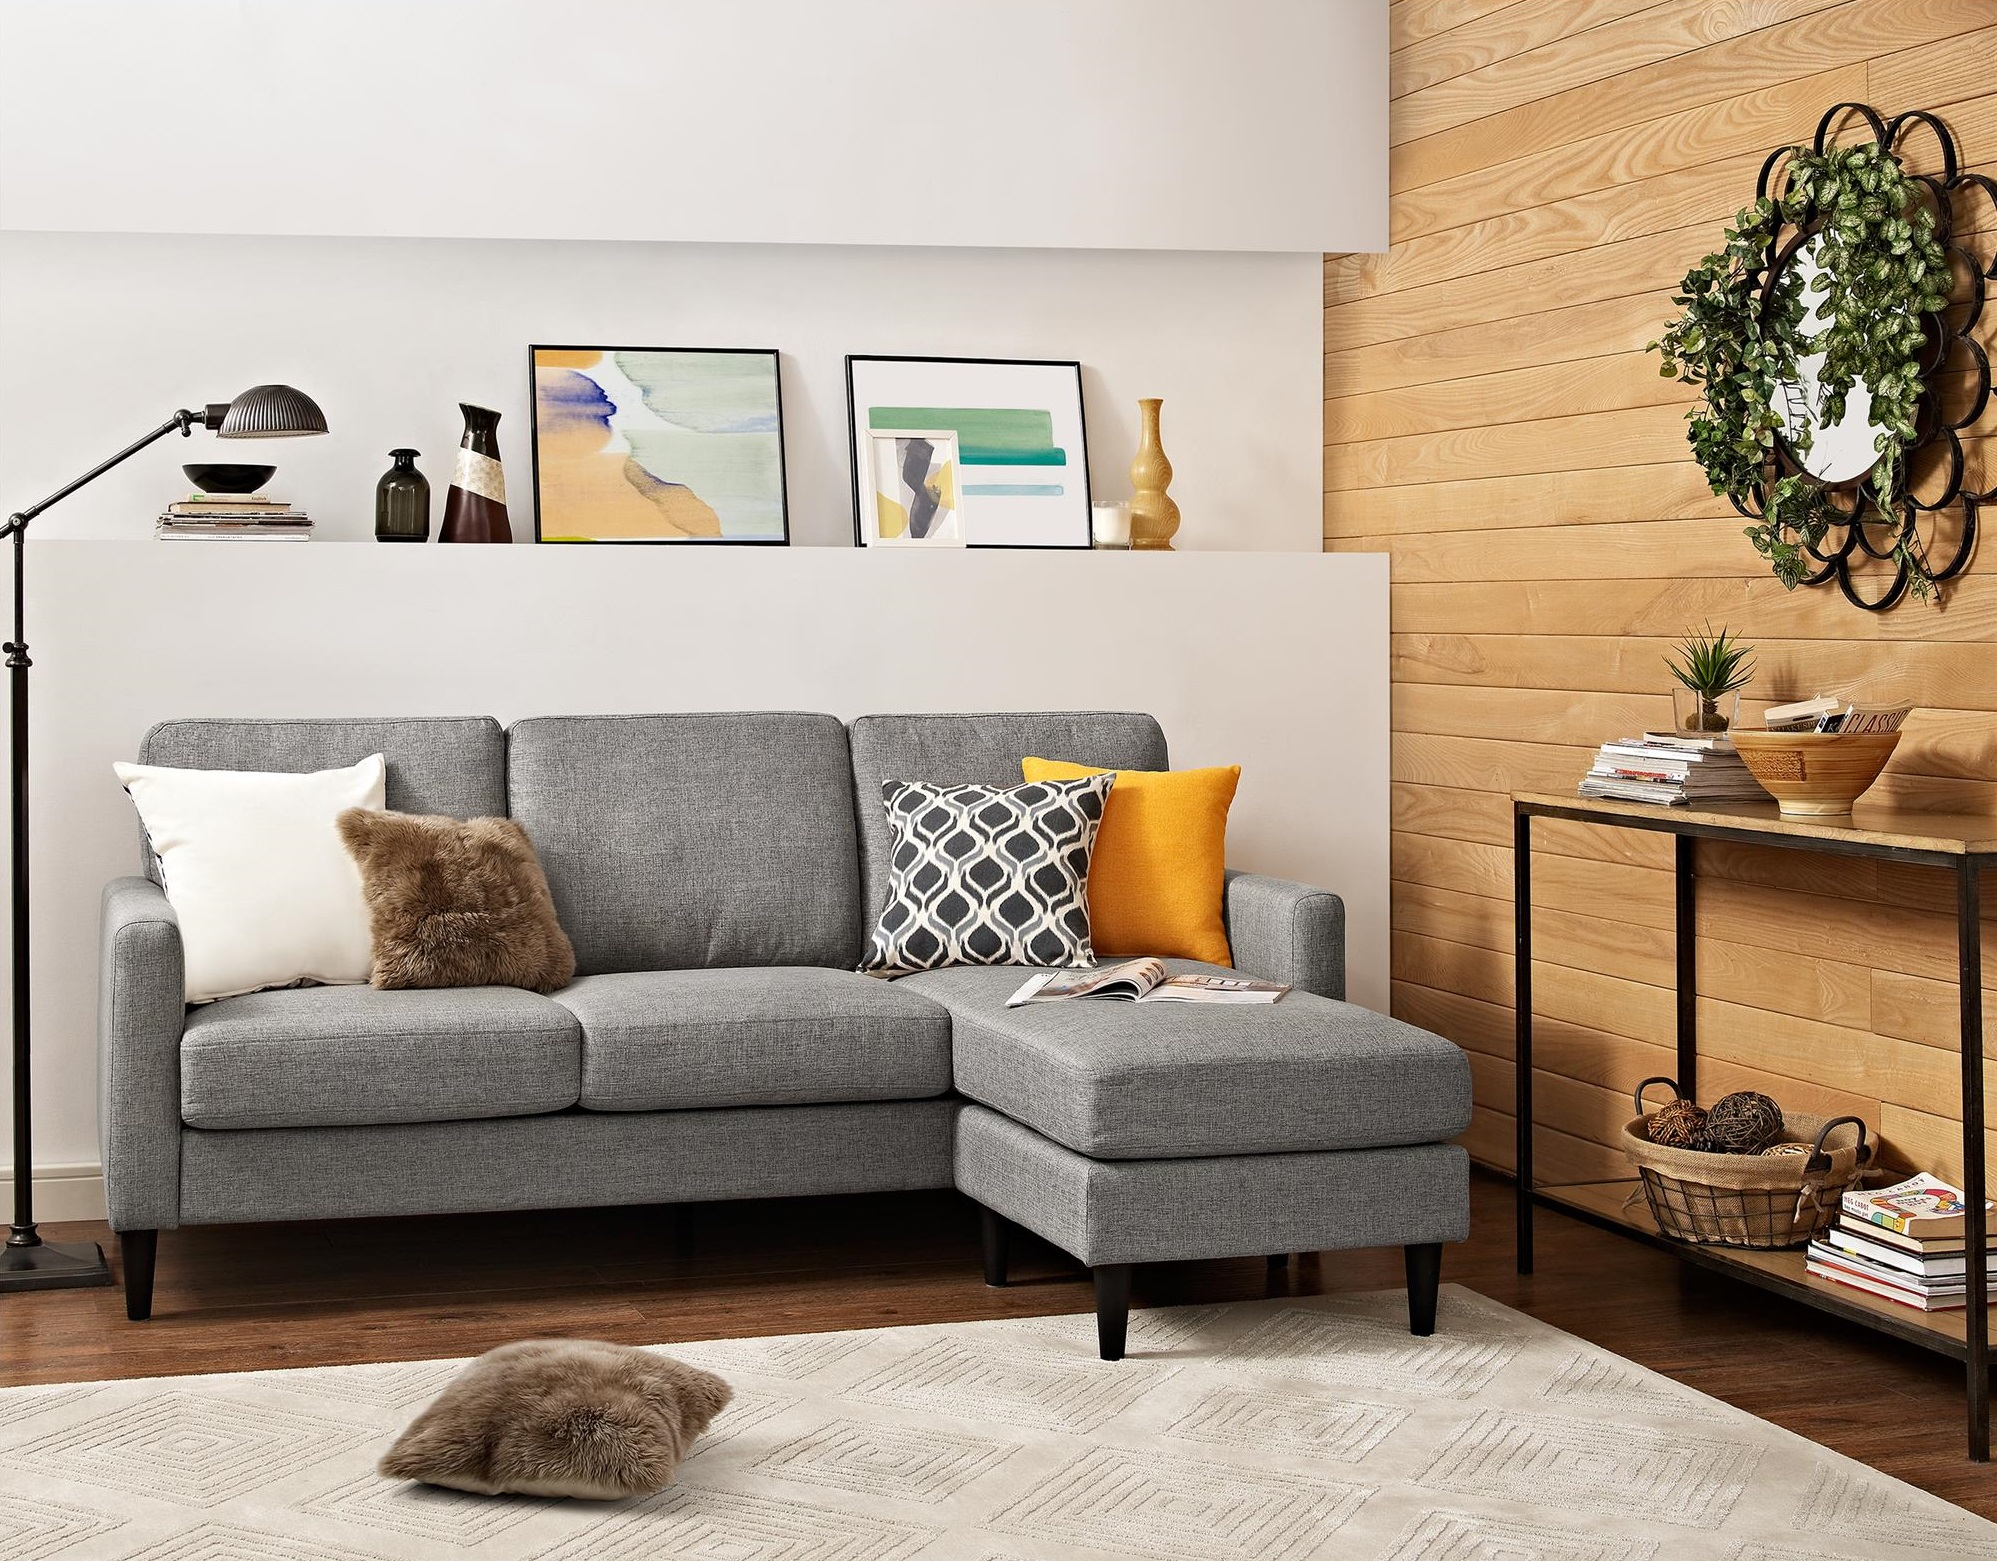 hot tatum acrylic side table cazenovia reversible sectional target waldo accent here everything ing from massive memorial day gold night bedding with matching curtains folding